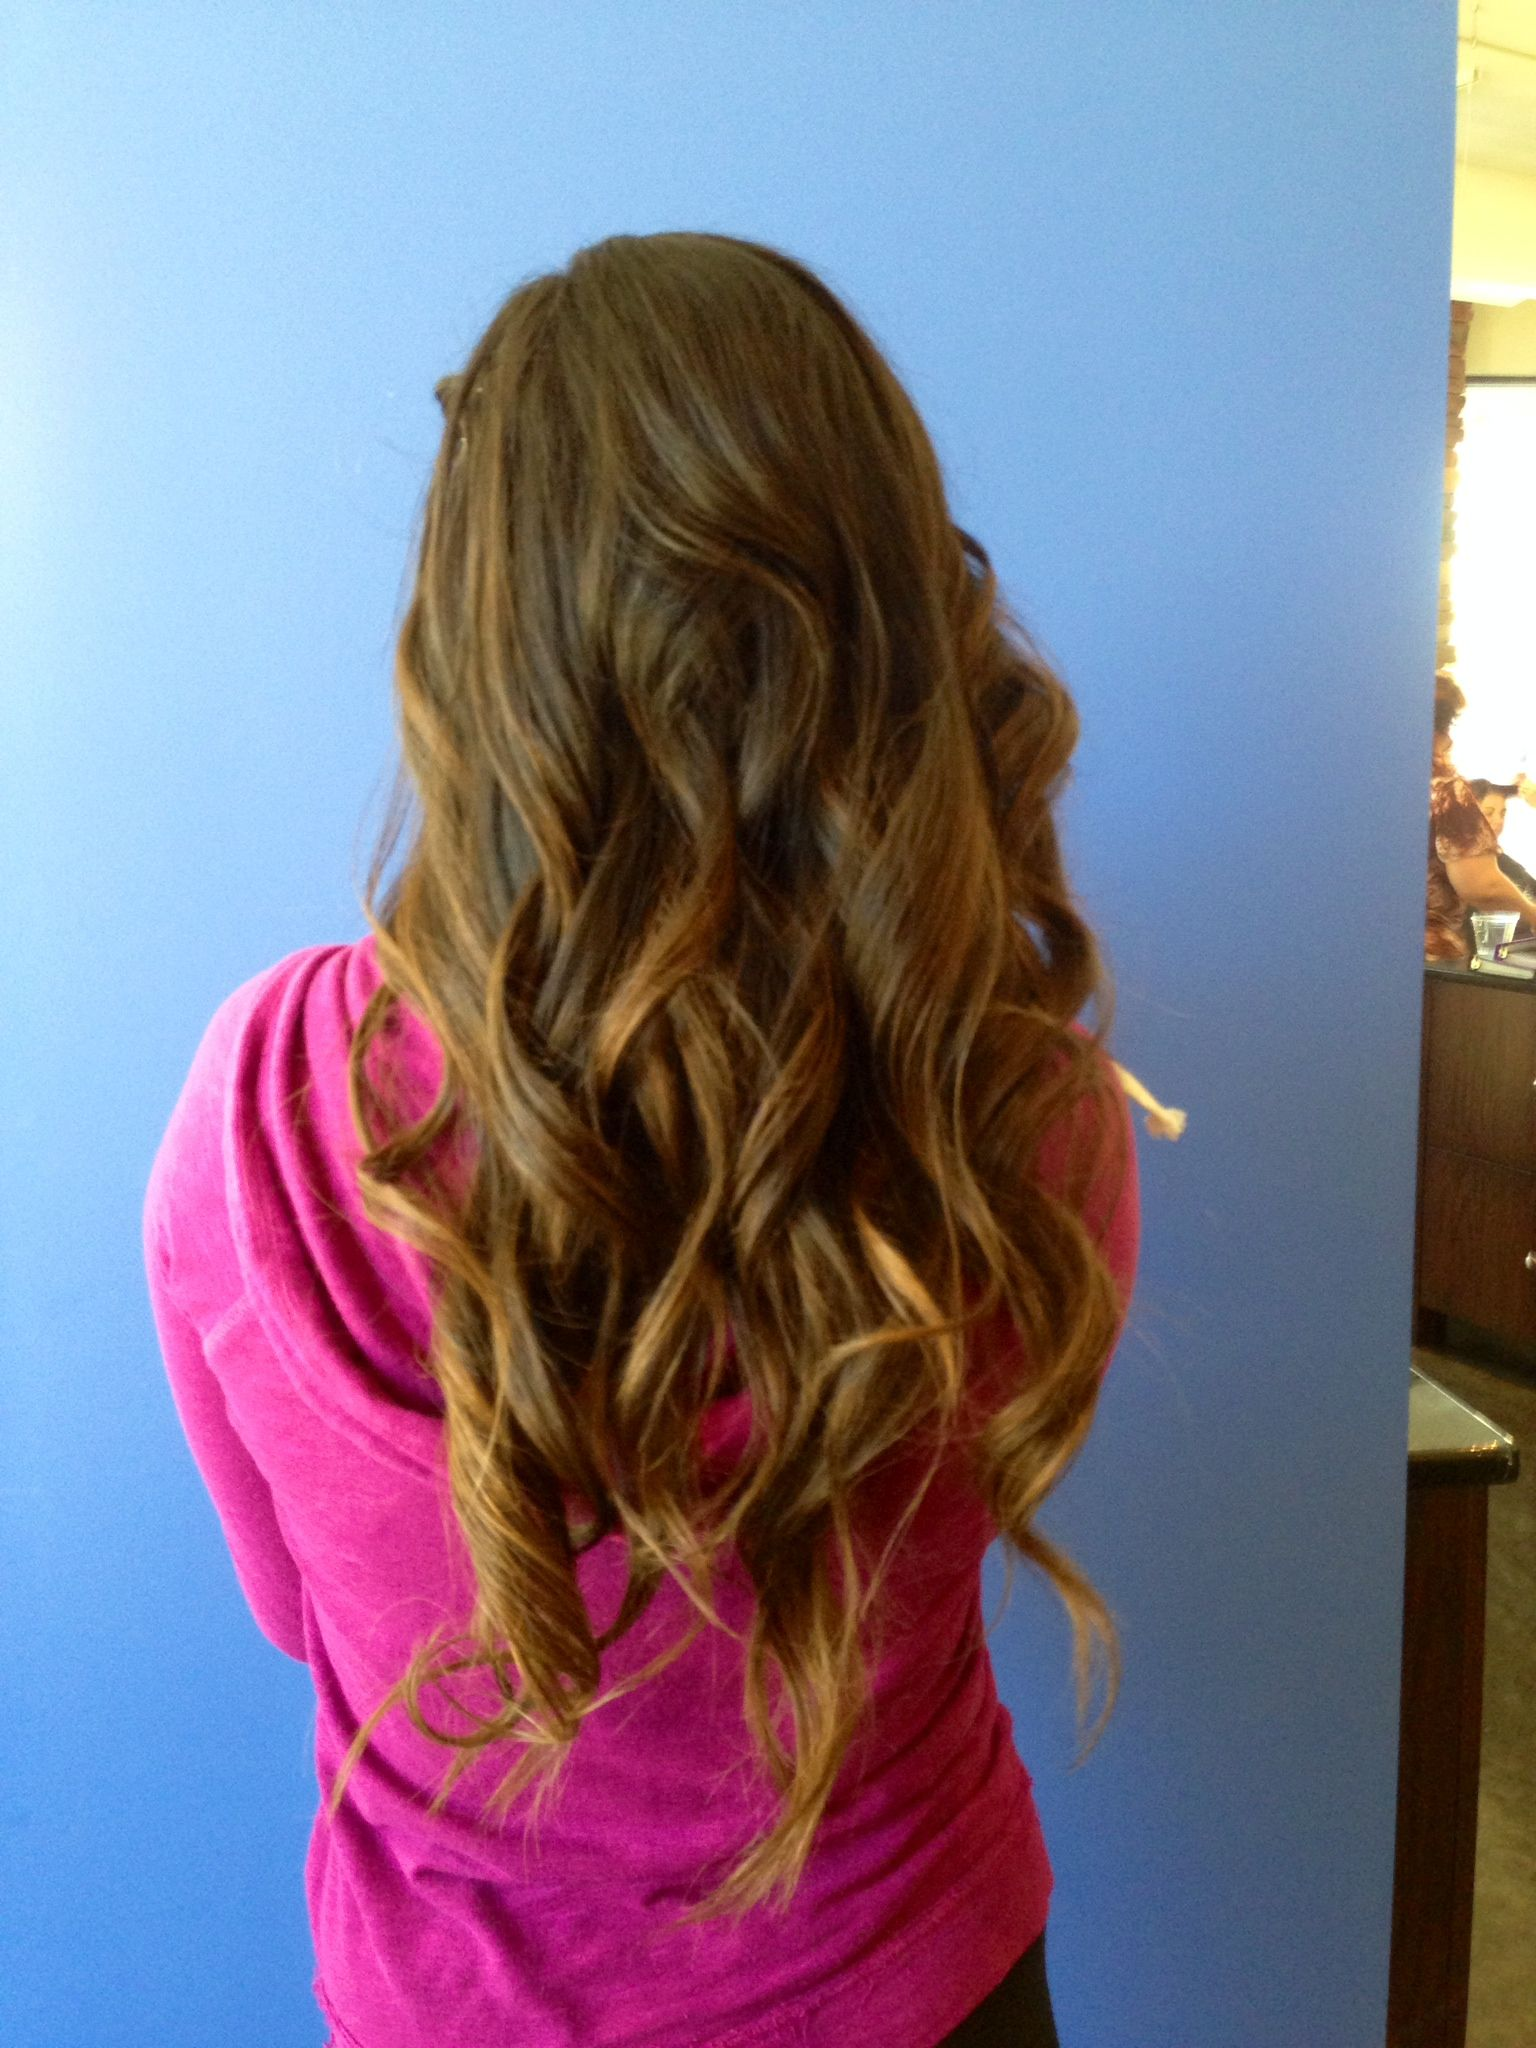 Home ing prom hairstyle Loose curls Hair Pinterest